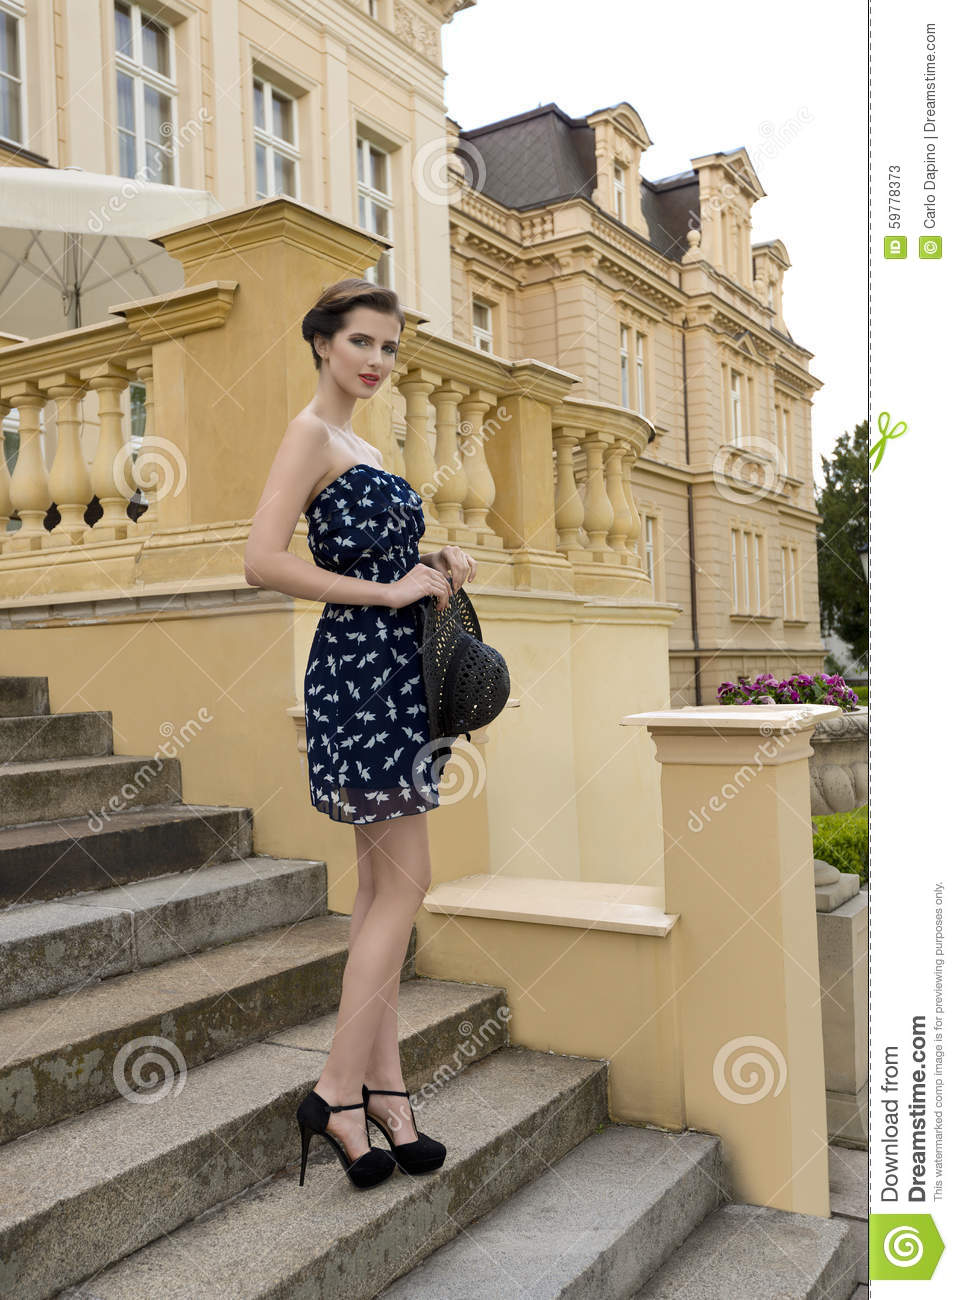 676f373e6c37 Fashion summer outdoor portrait of very beautiful young girl with heels